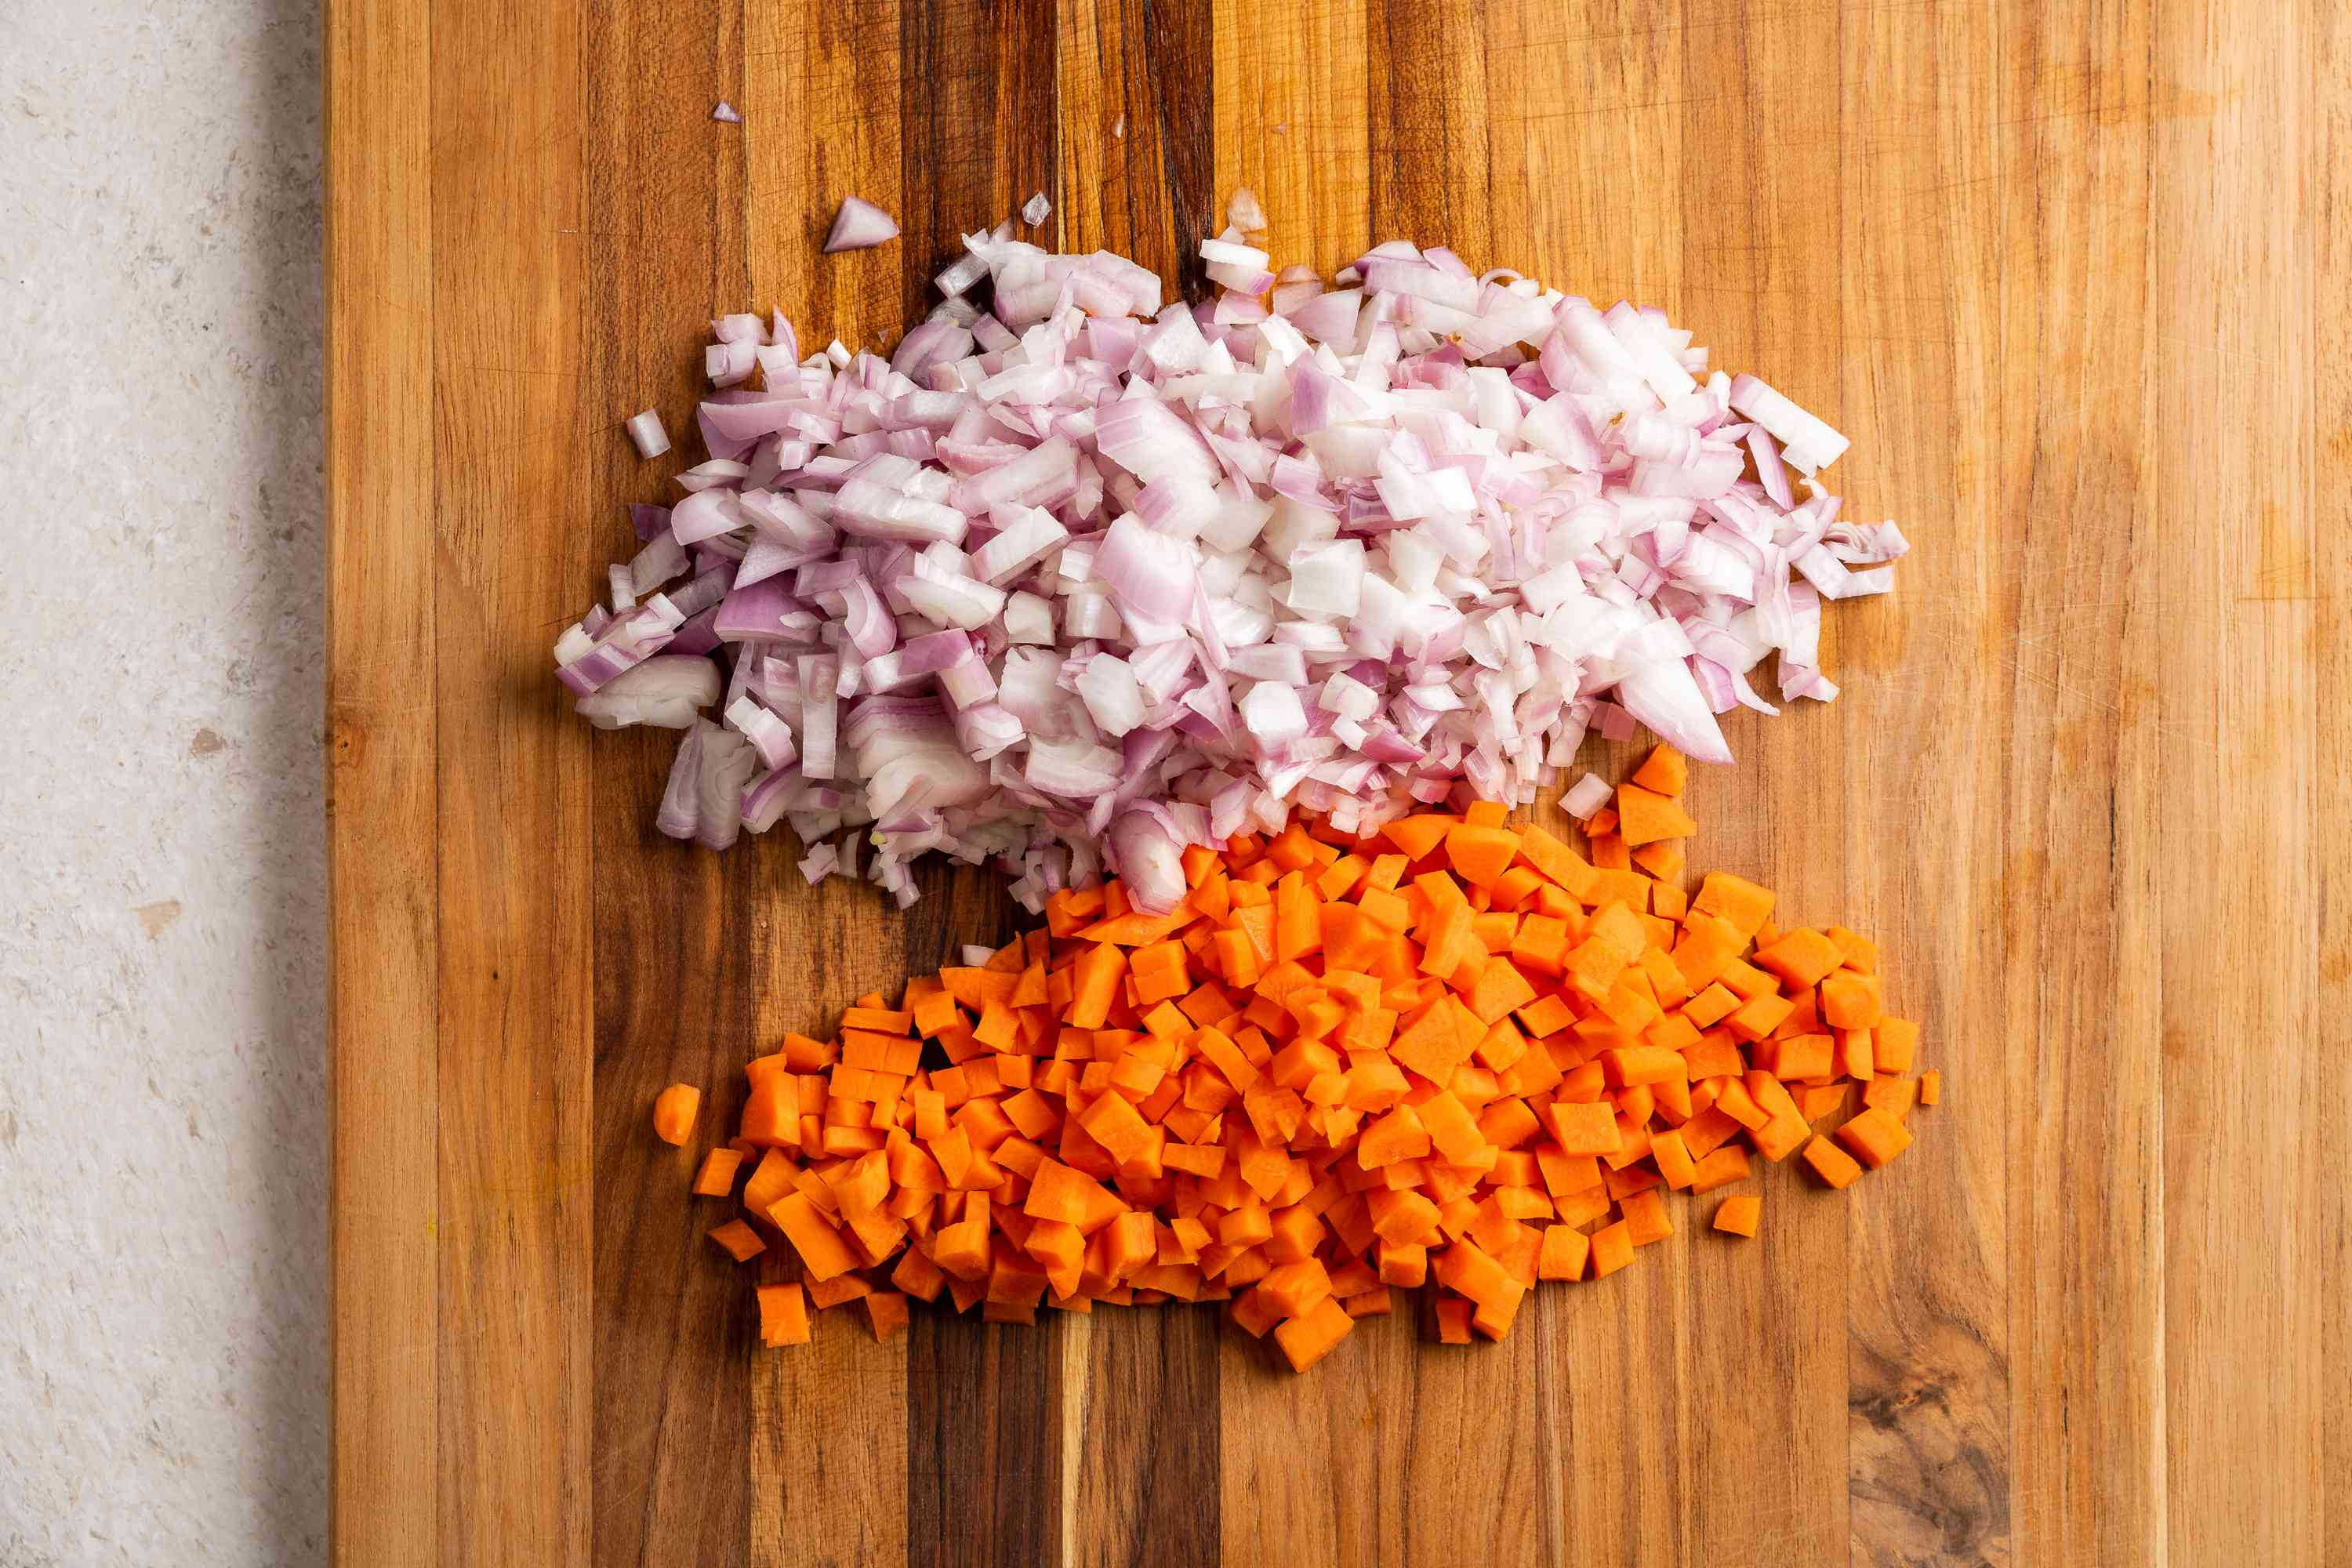 Peel and finely chop the shallots and carrots